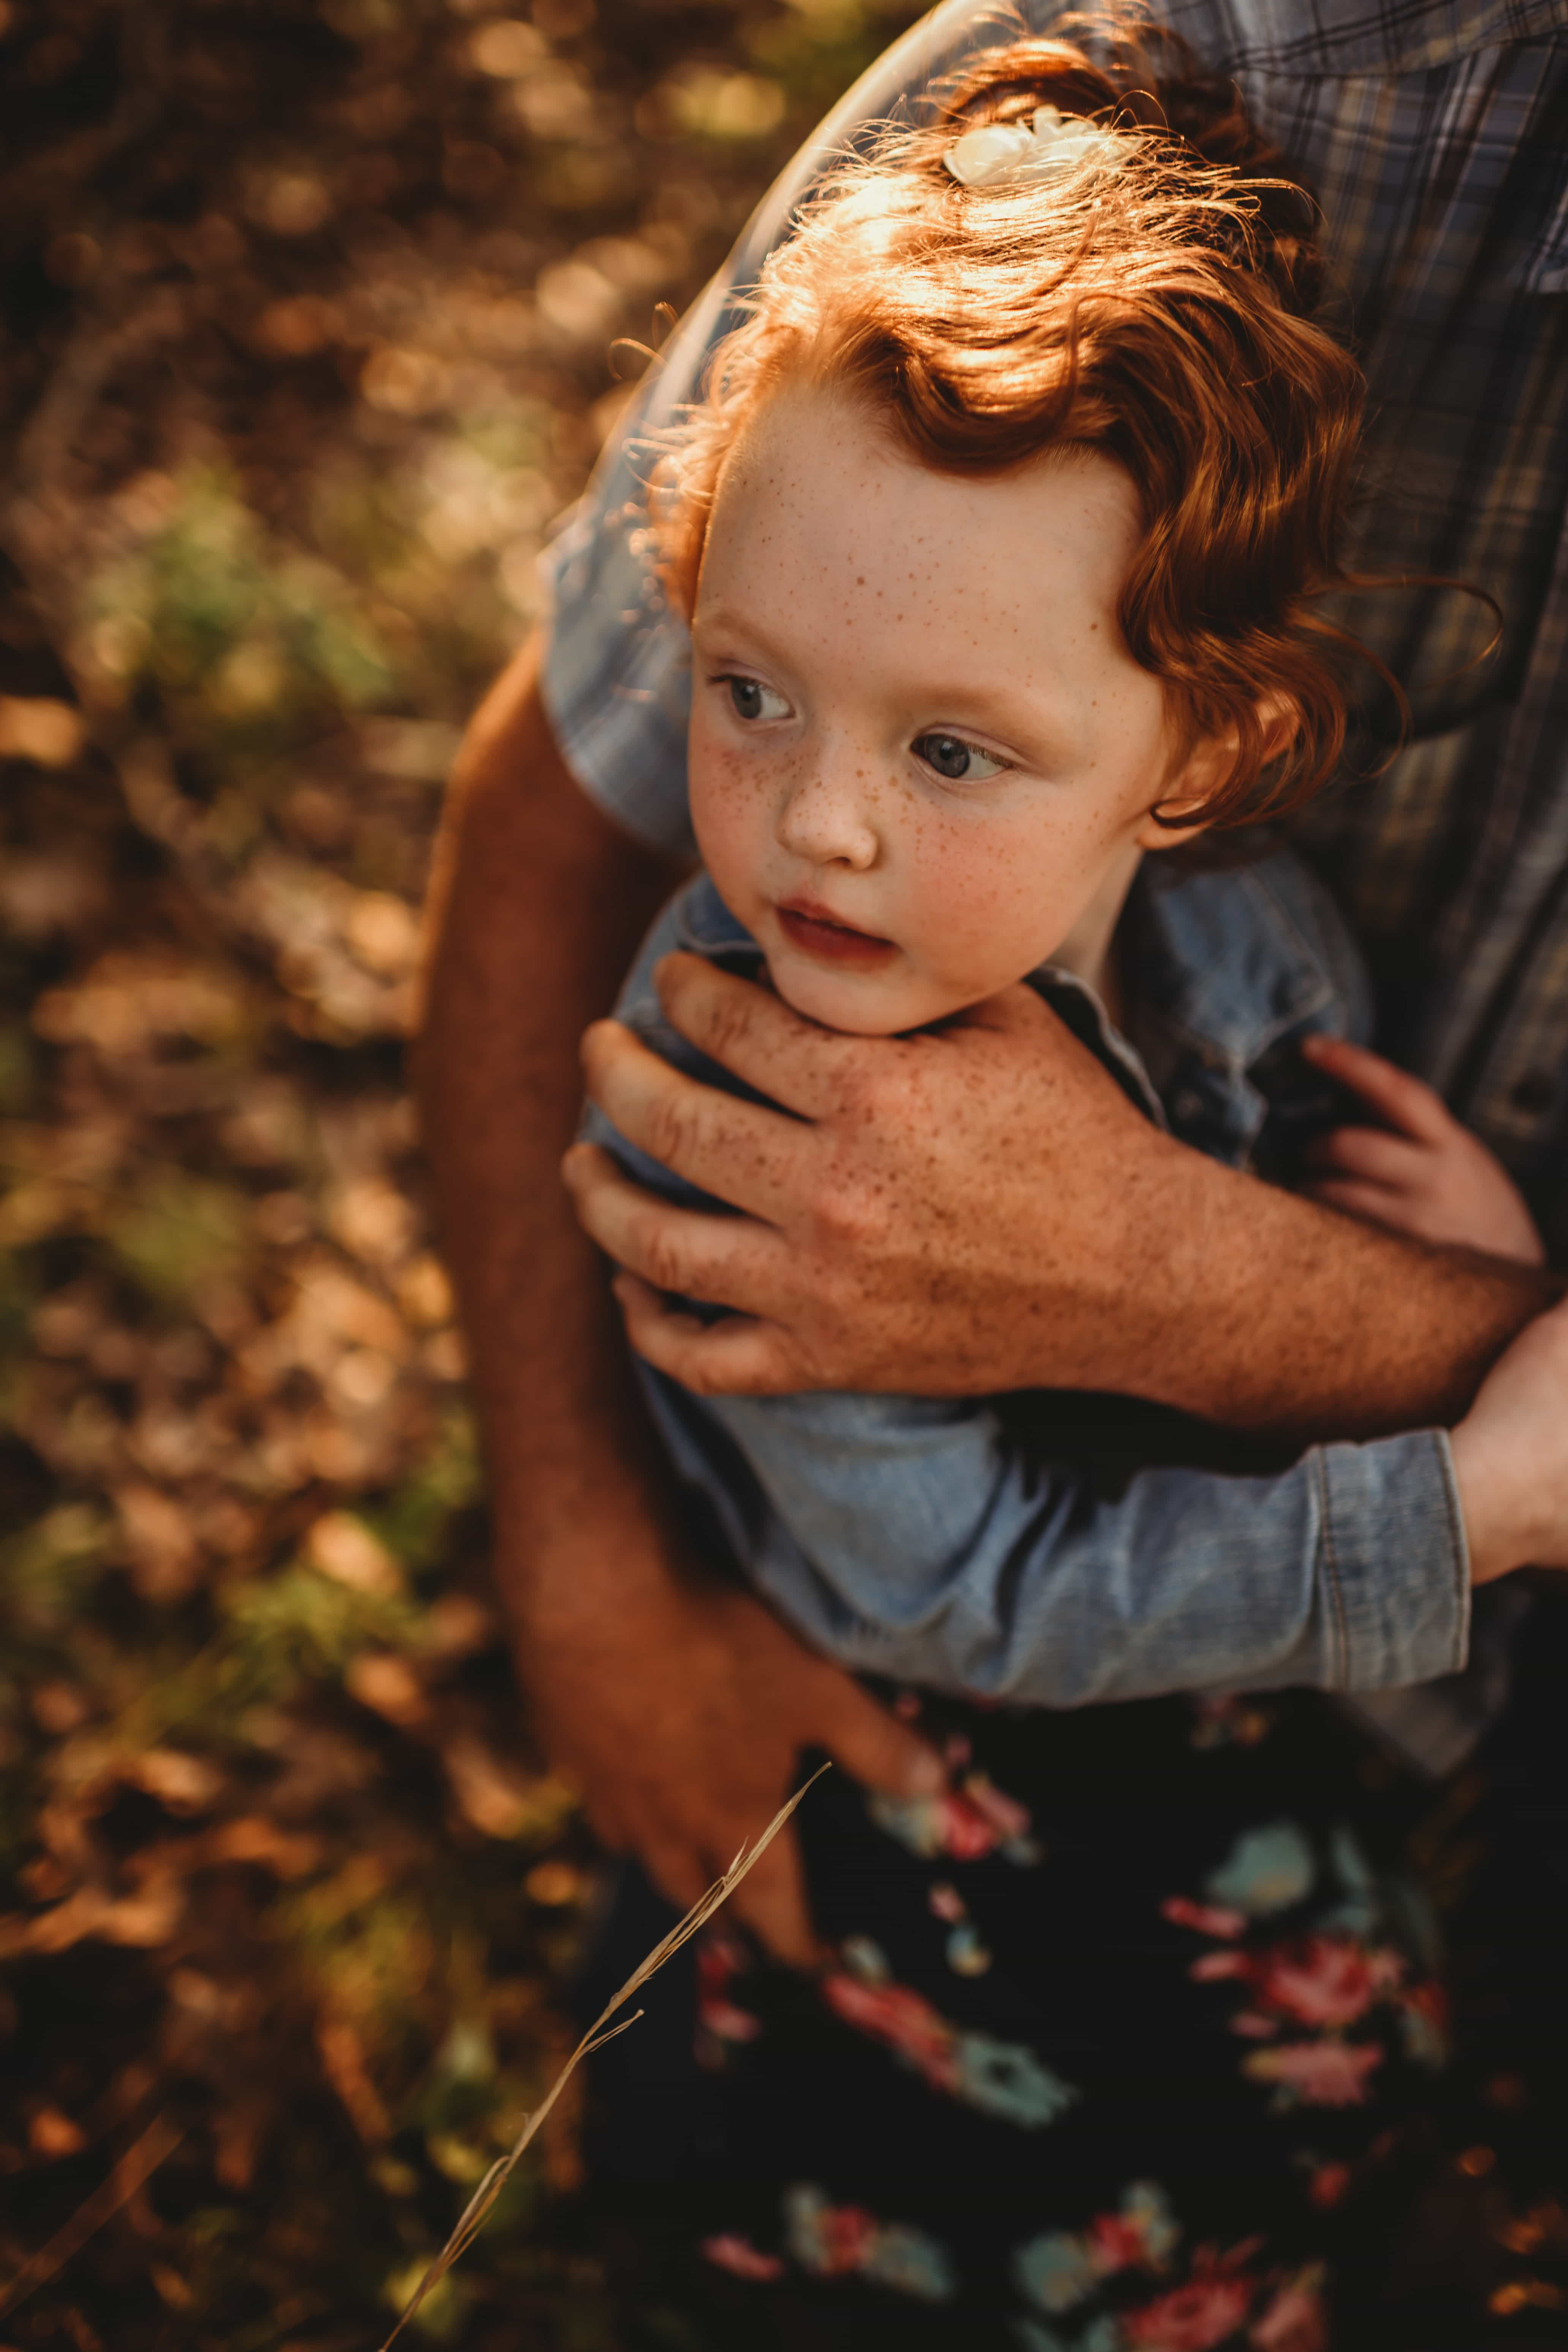 Children Photography, you child snuggled into parent